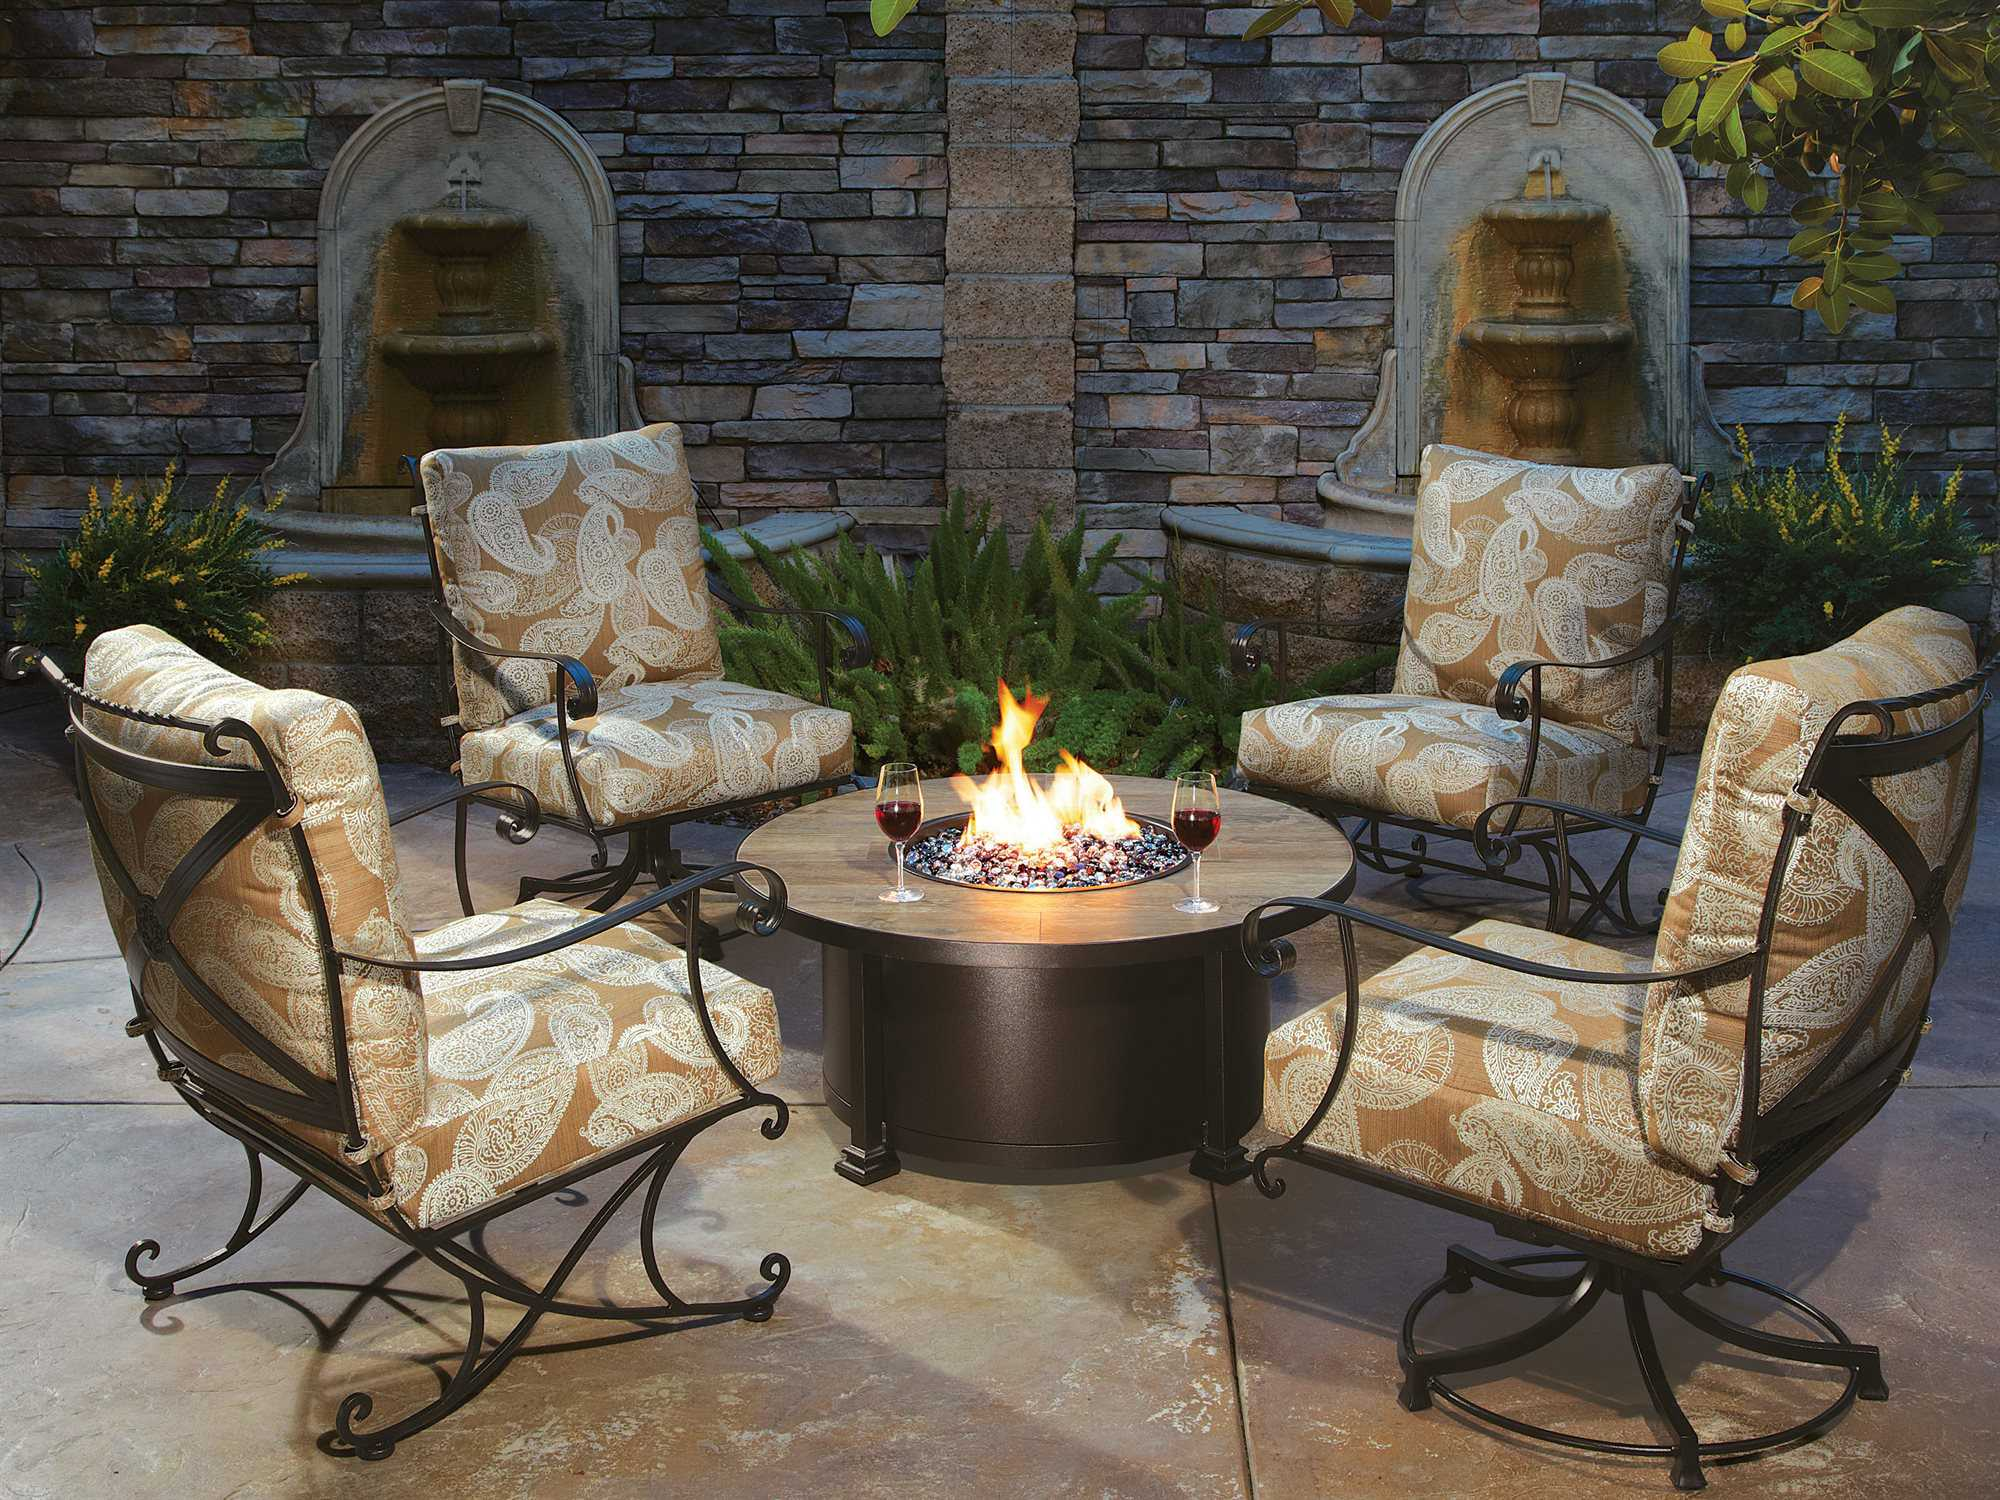 Ow Lee Casual Fireside Santorini Wrought Iron 42 Round